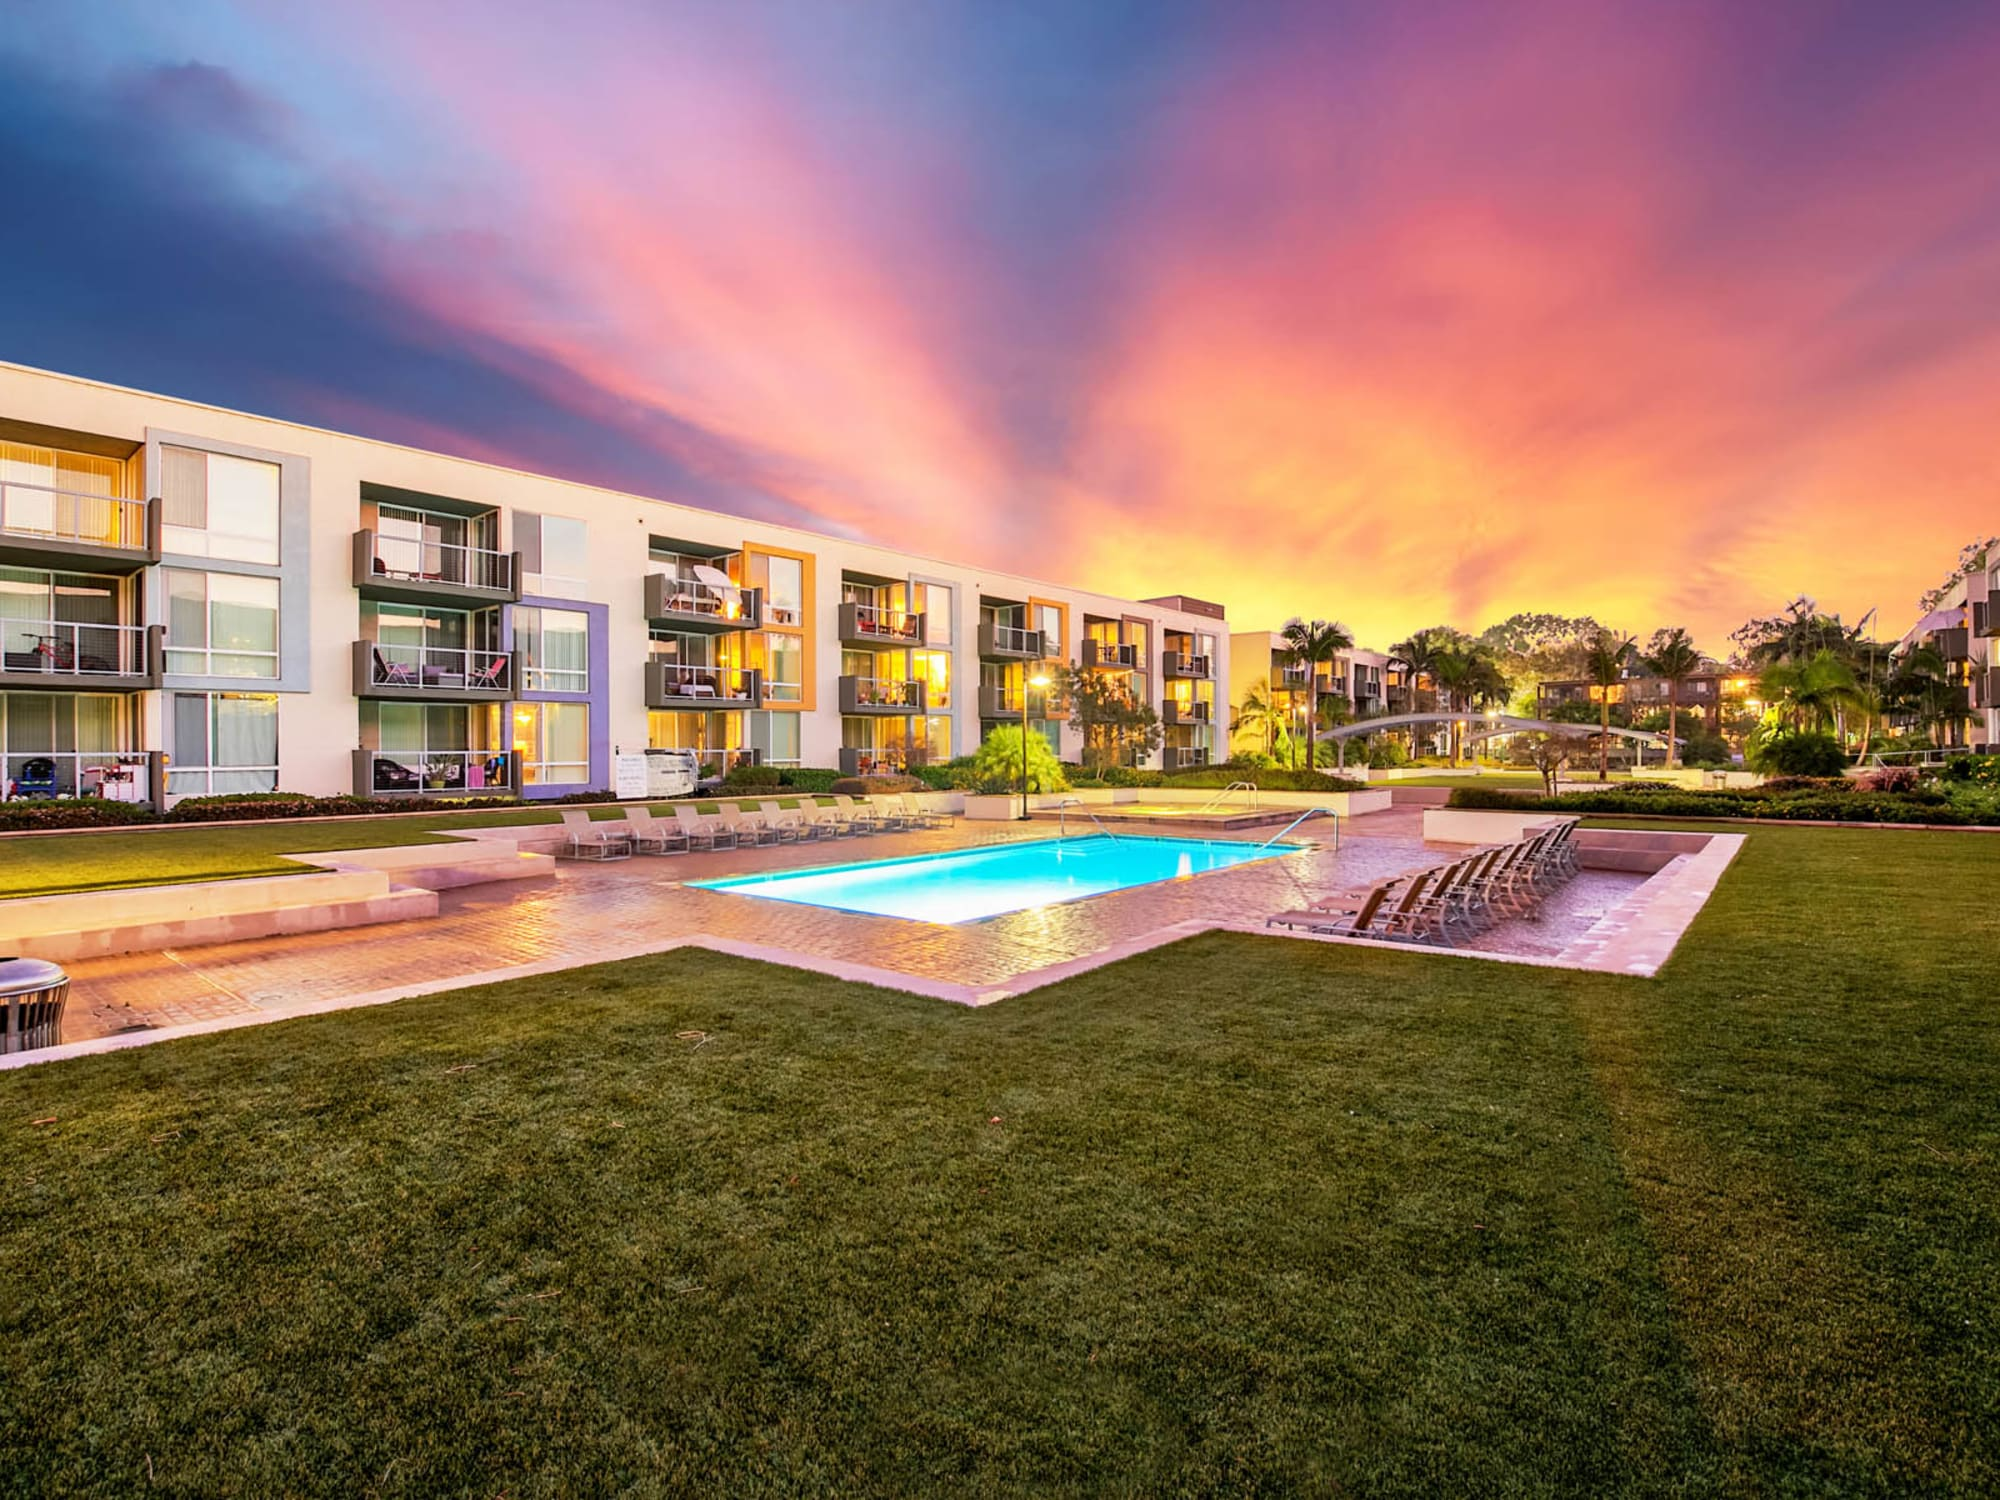 Gorgeous sunset over the swimming pool area at Waters Edge at Marina Harbor in Marina Del Rey, California